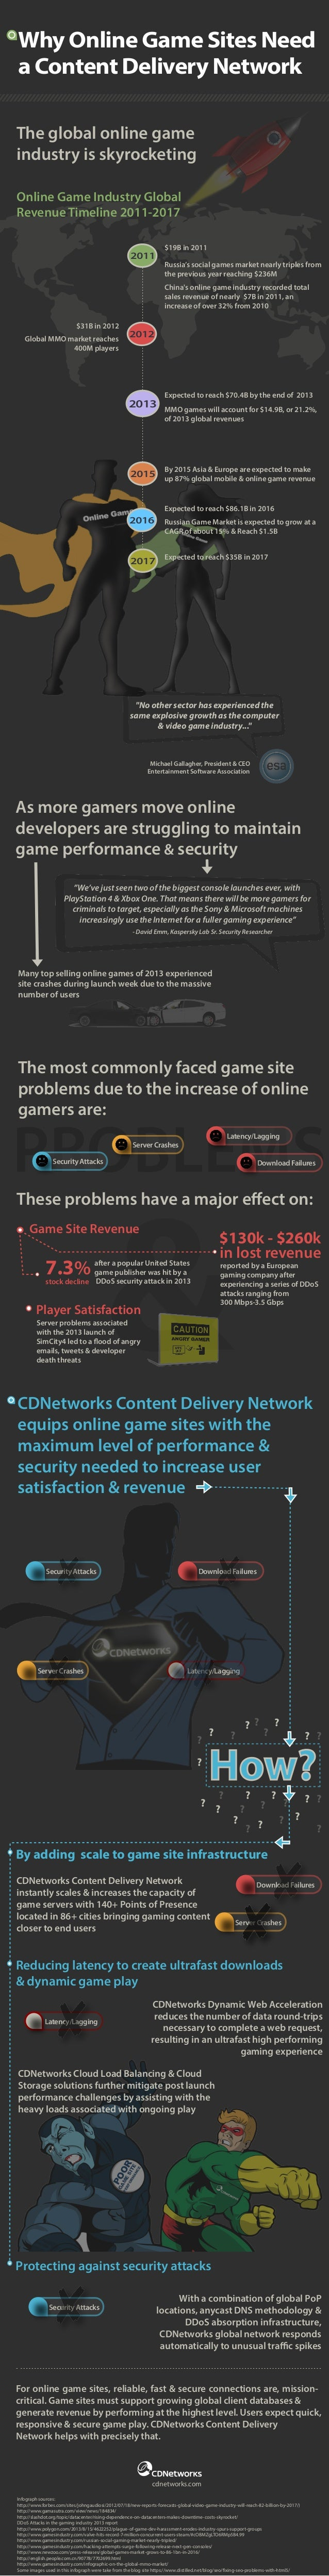 Why Online Game Sites Need a Content Delivery Network The global online game industry is skyrocketing Online Game Industry...